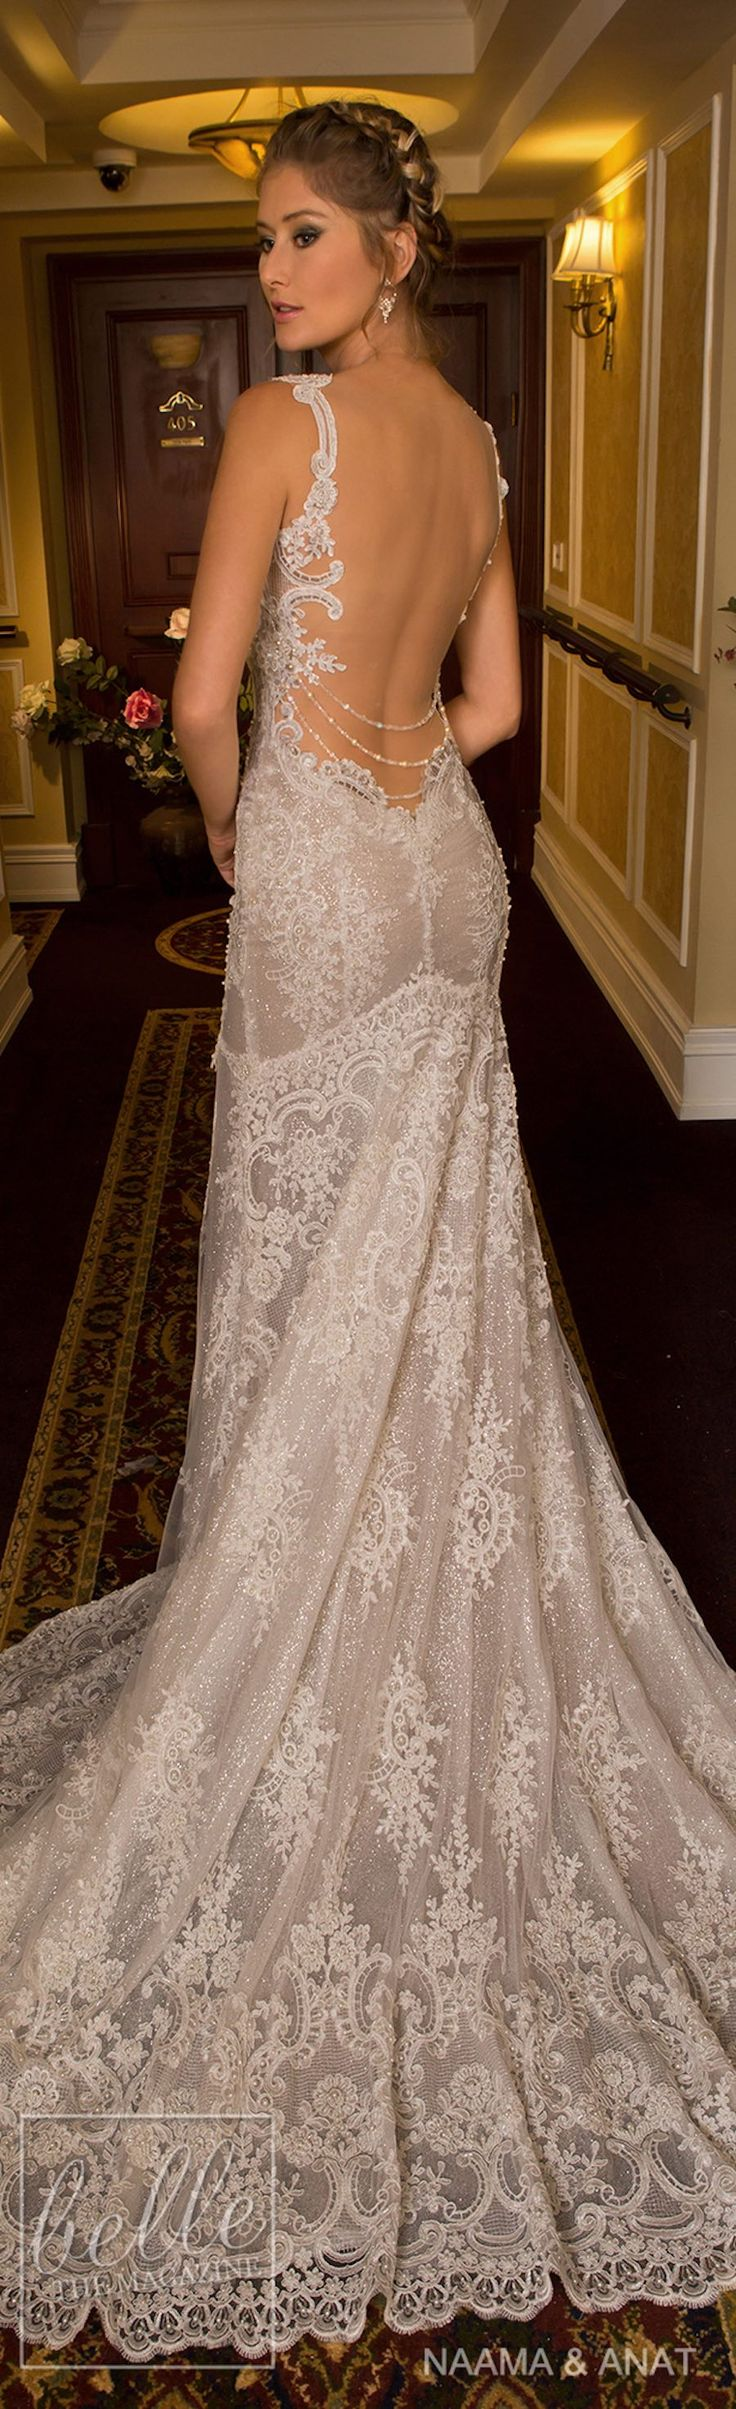 """Naama & Anat 2018 Wedding Dresses - """"Starlight"""" Bridal Collection. Beautiful dress...wish the back was a few inches higher."""